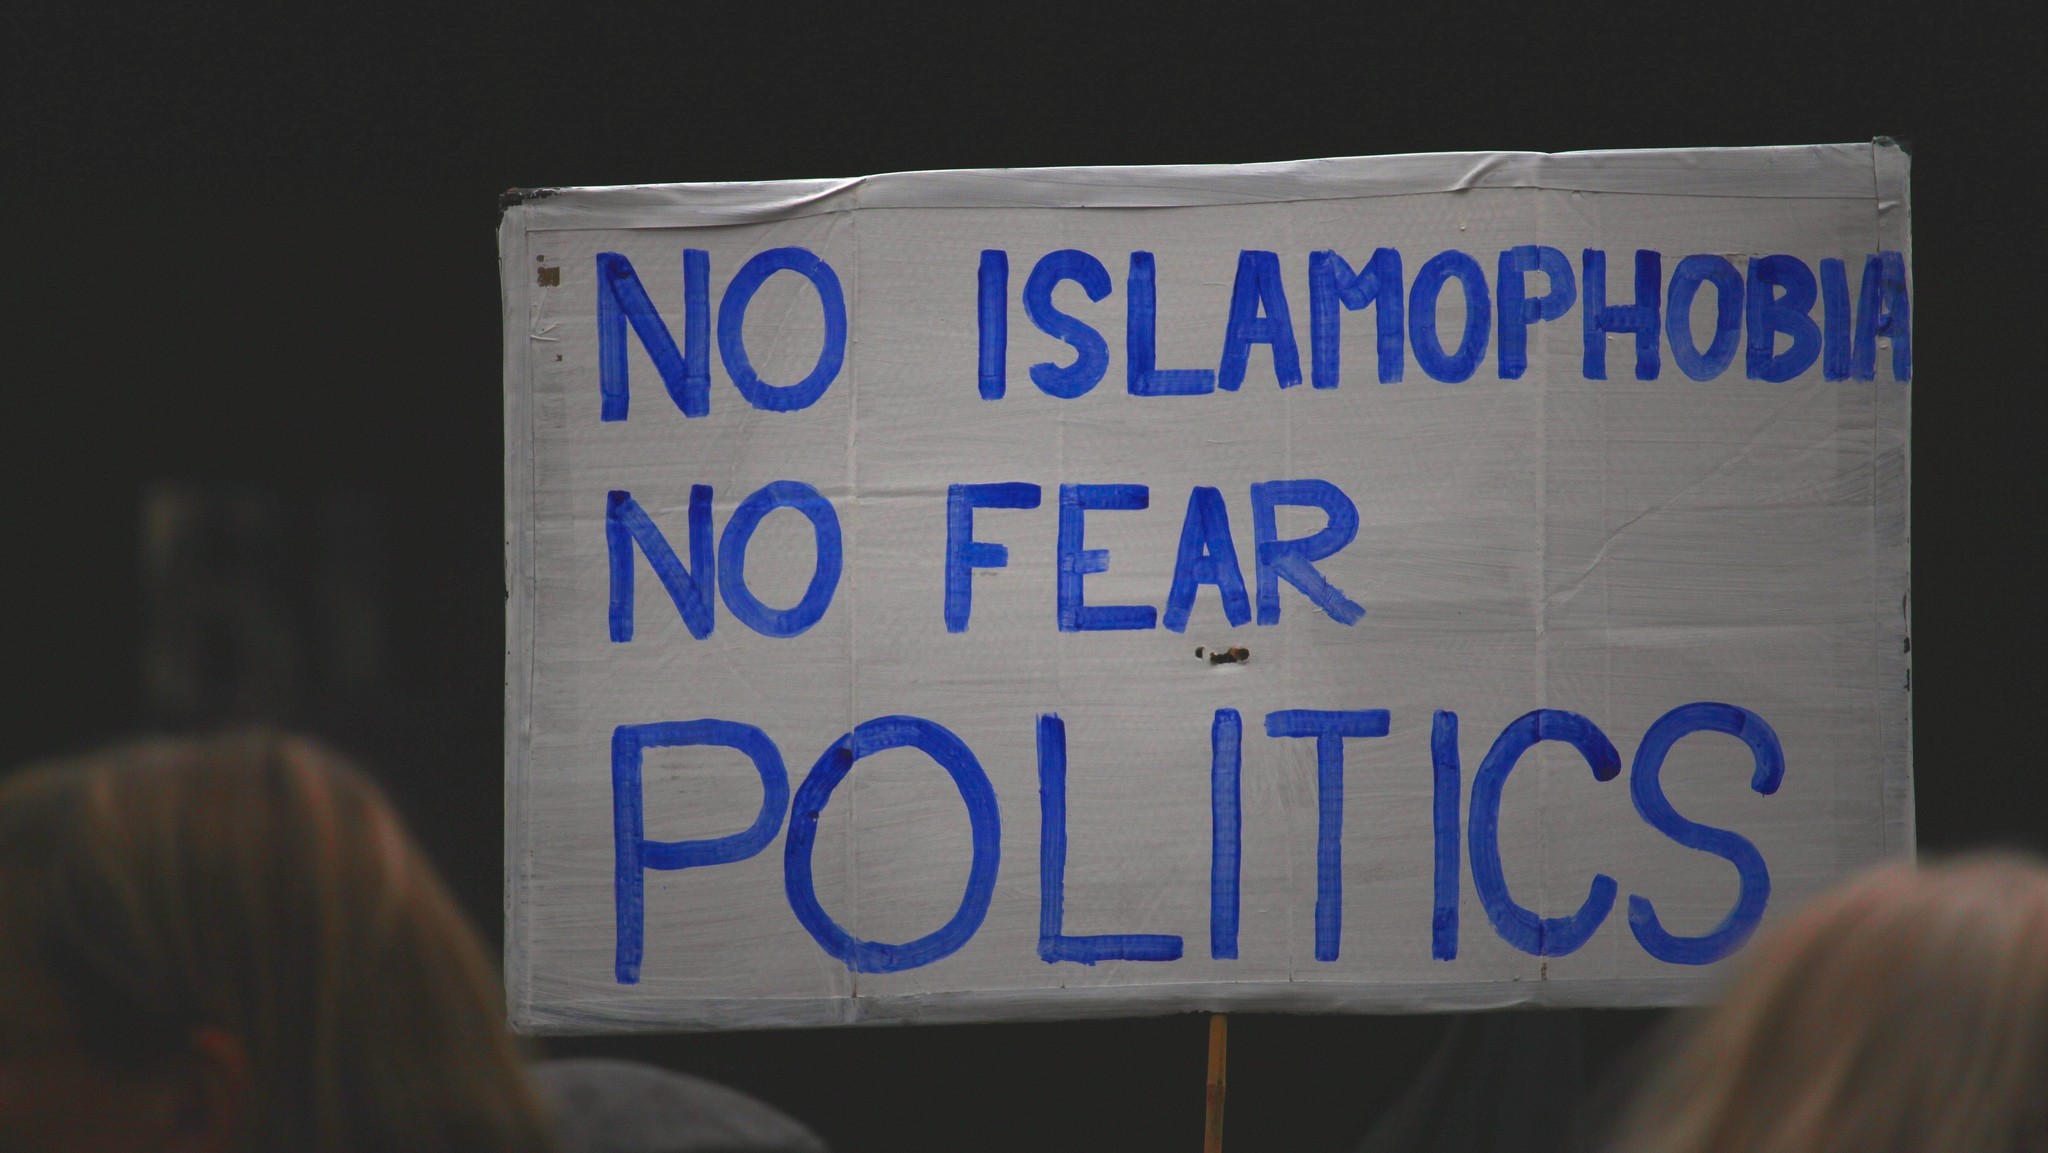 Islamophobic Attacks Have Spiked in the US Since the Paris Attacks